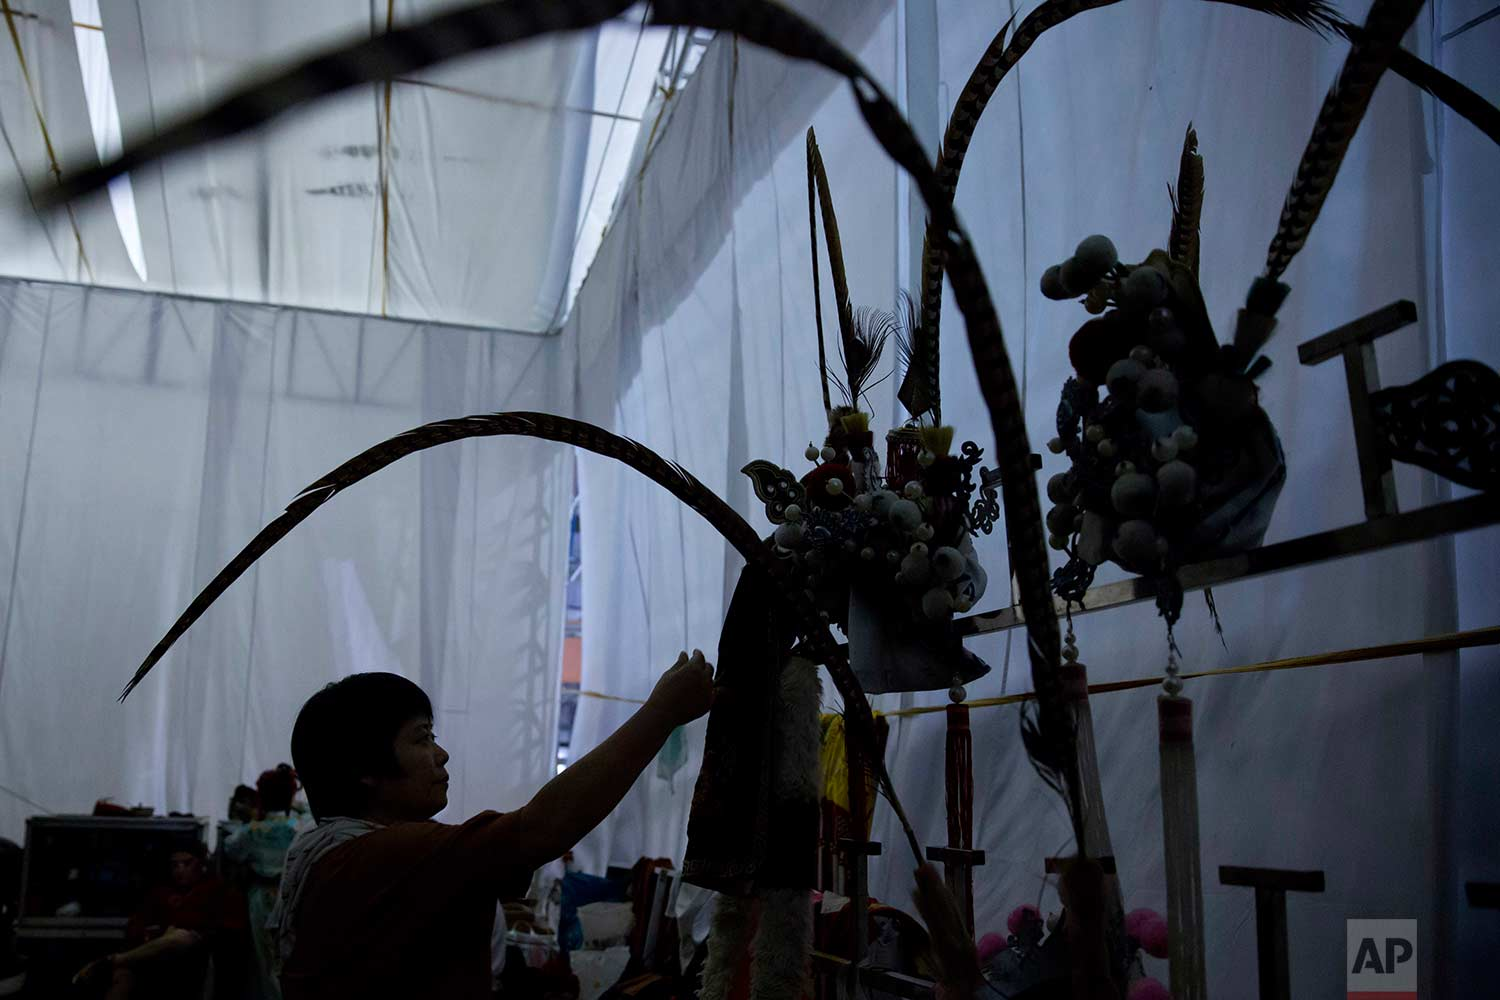 """In this Aug. 30, 2017, photo, Chinese opera costumes are displayed at a makeshift theater during the """"Hungry Ghost Festival"""" in Hong Kong. (AP Photo/Kin Cheung)"""